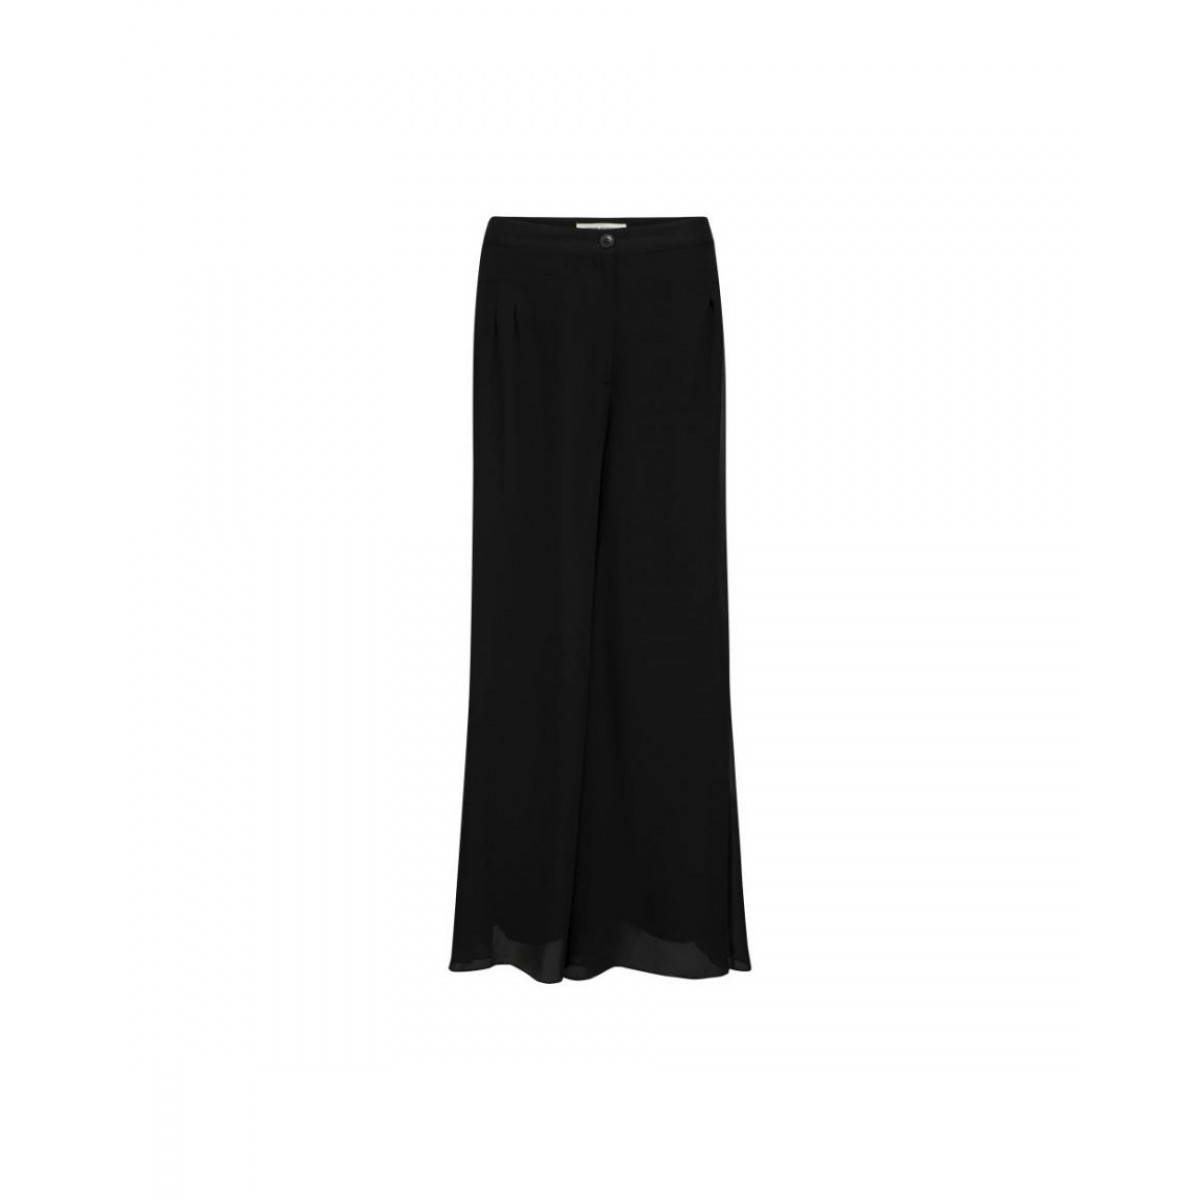 Sofie Schnoor S164205 pants Loose Fit Black-31